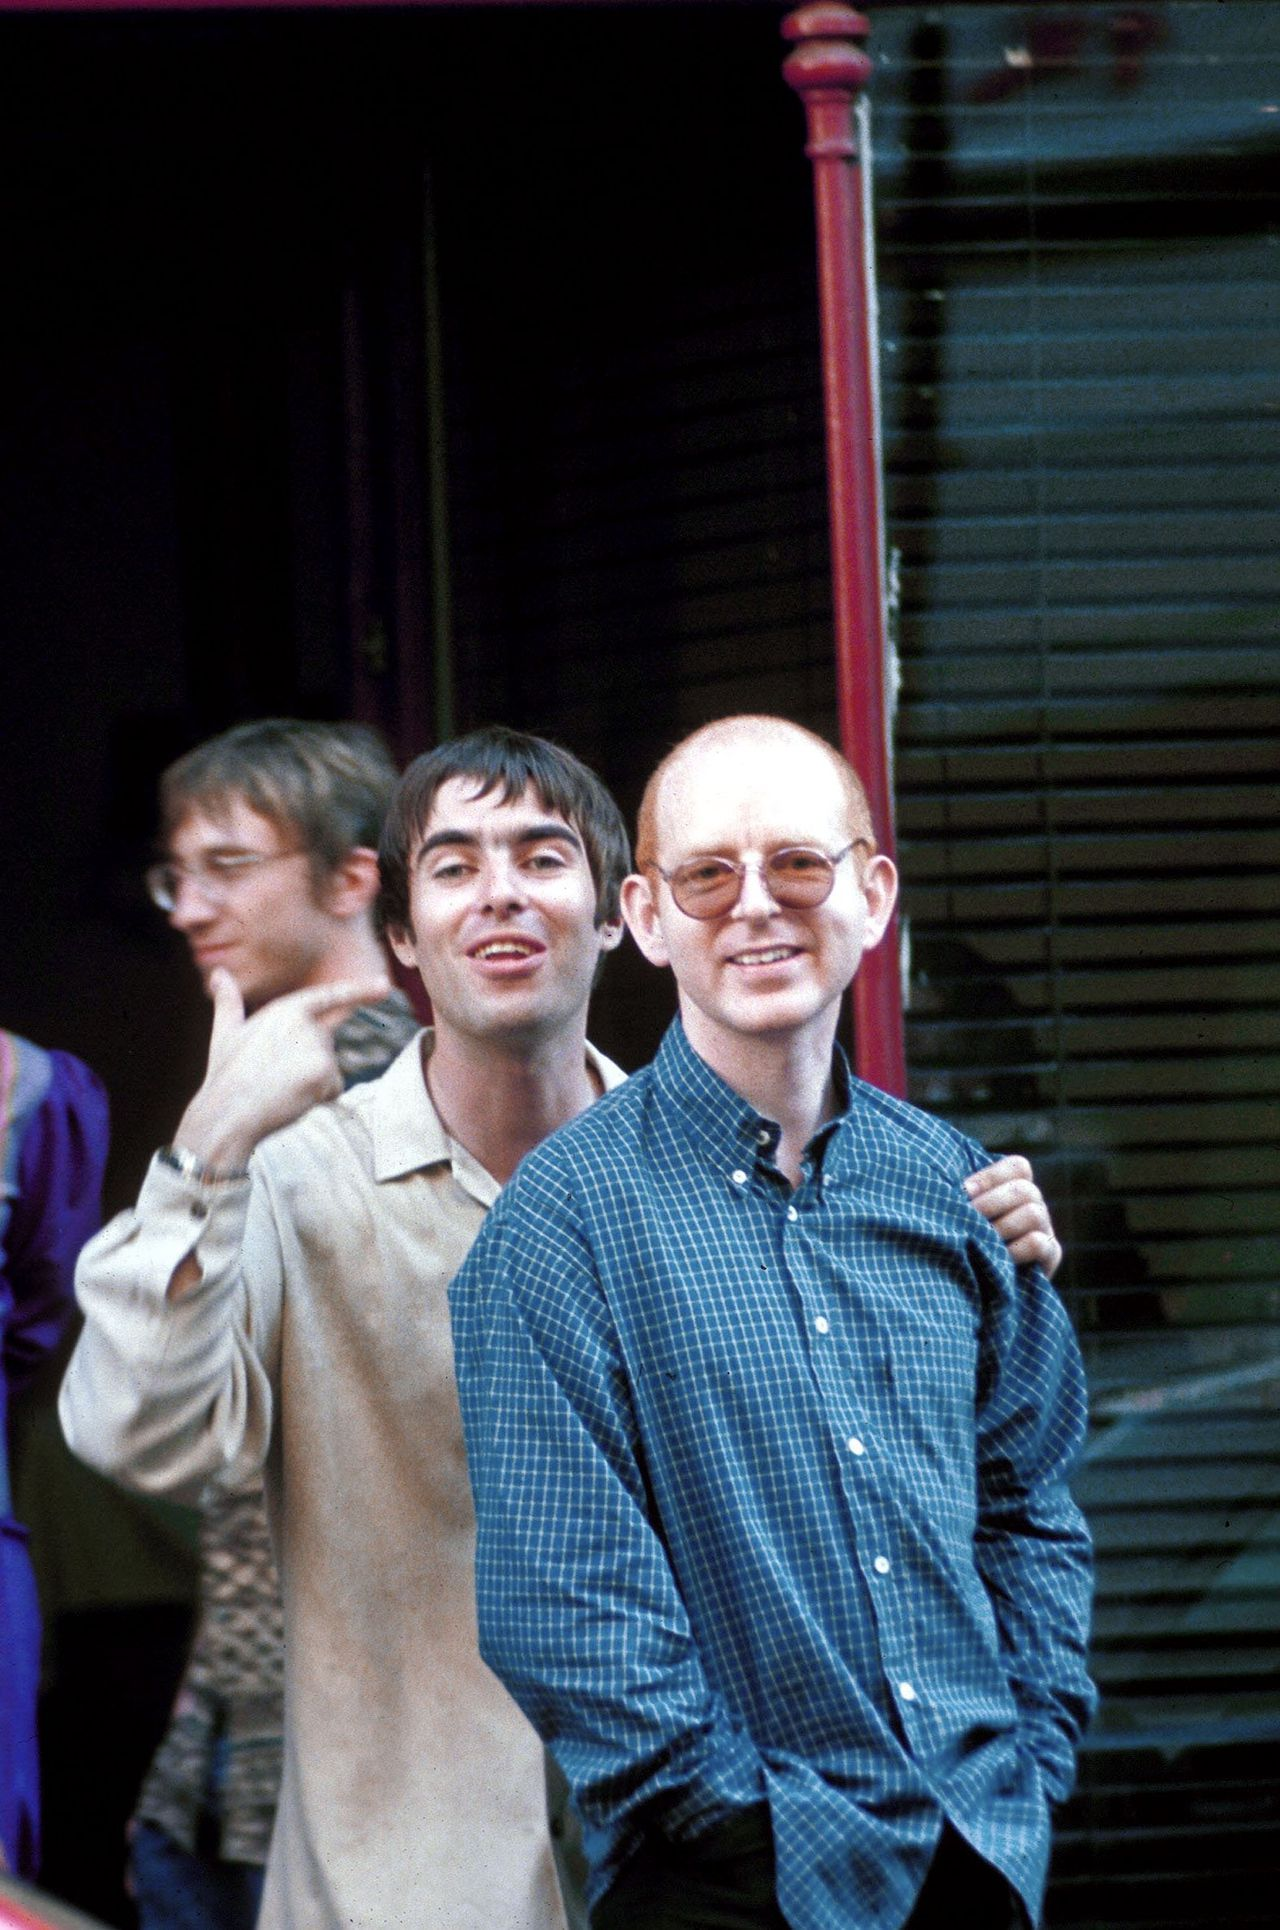 Mandatory Credit: BRIAN RASIC / Rex Features Ltd. LIAM GALLAGHER AND ALAN MCGEE , LONDON , BRITAIN - 1997 OASIS